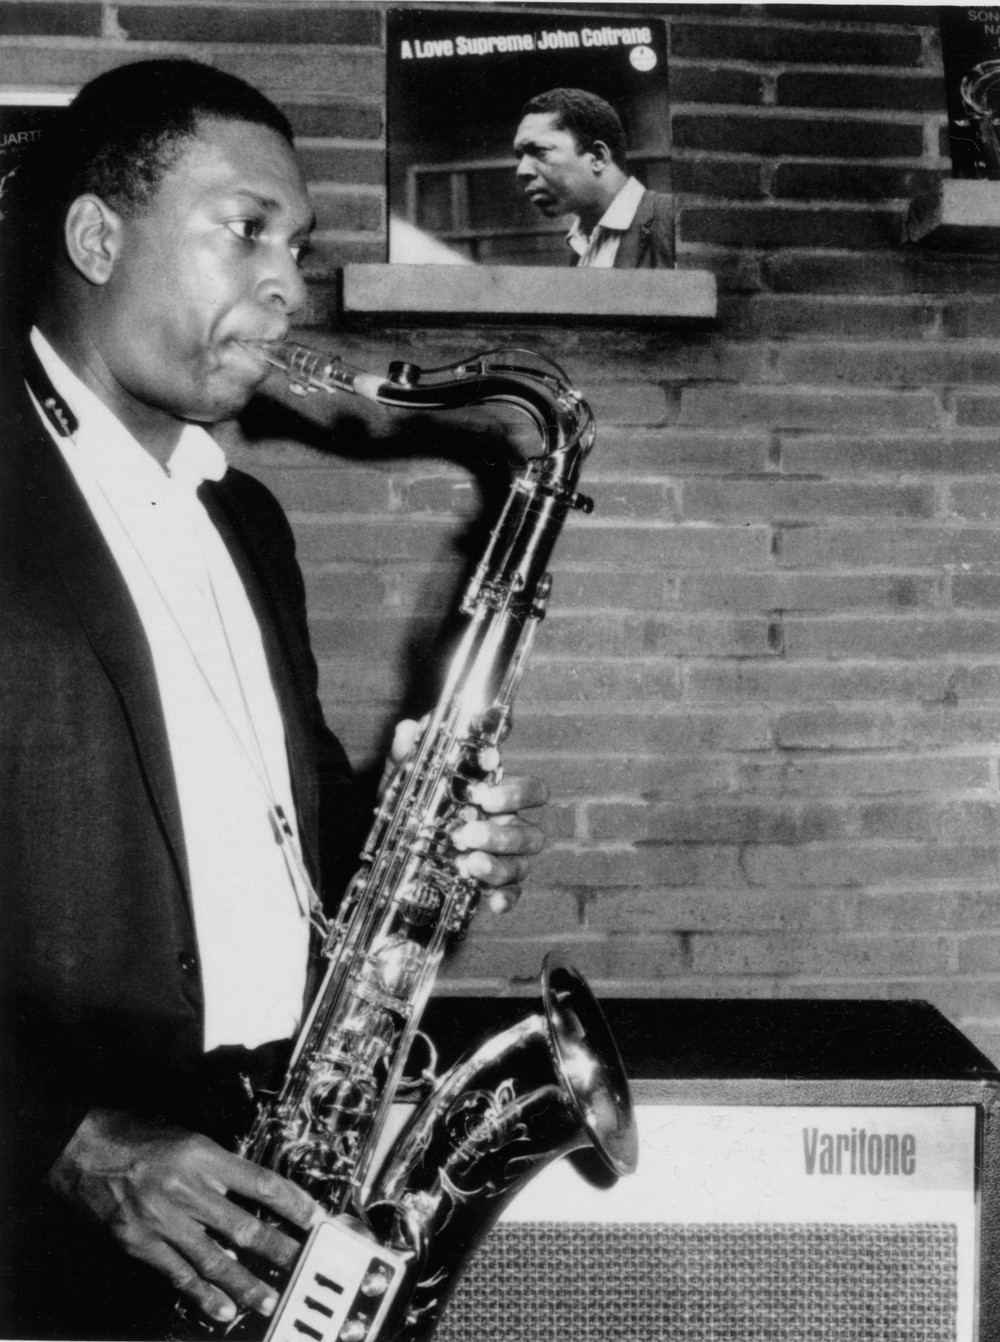 John Coltrane on Spotify